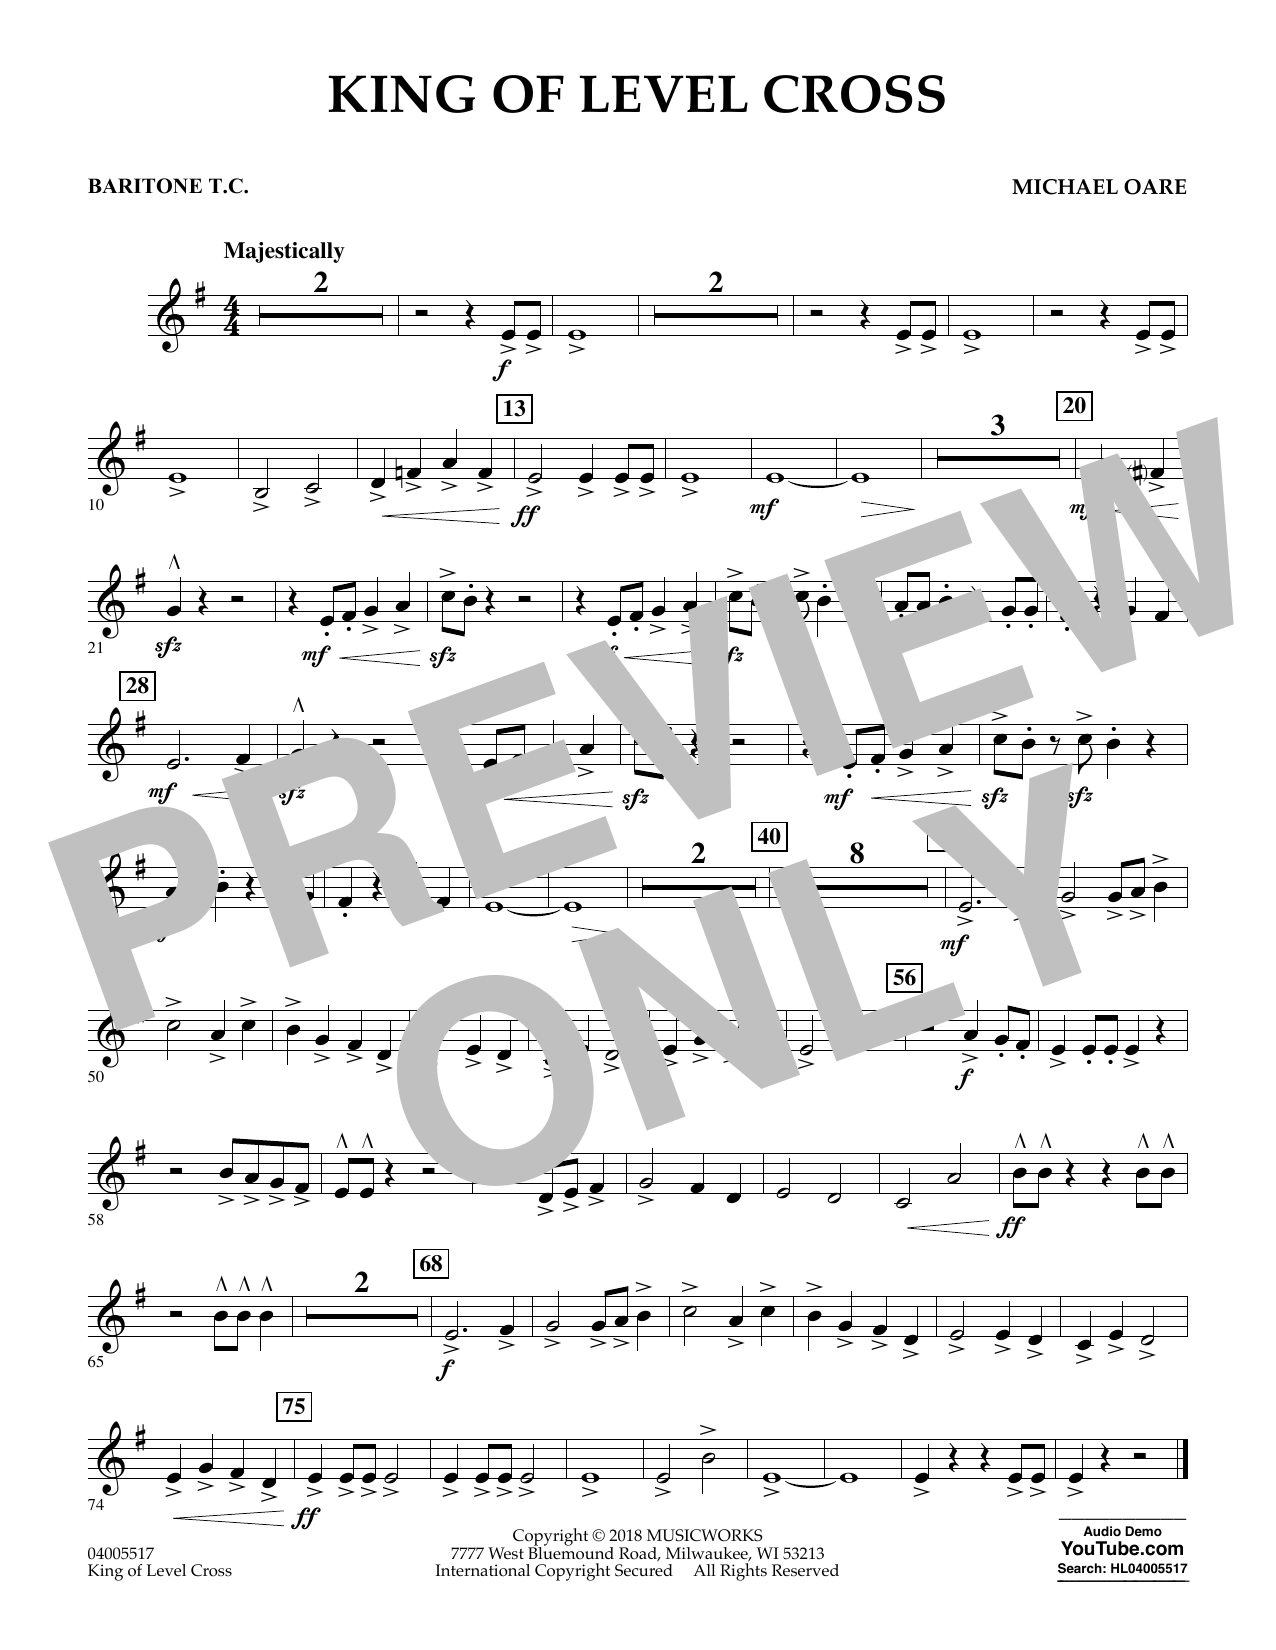 Michael Oare King of Level Cross - Baritone T.C. sheet music notes and chords. Download Printable PDF.